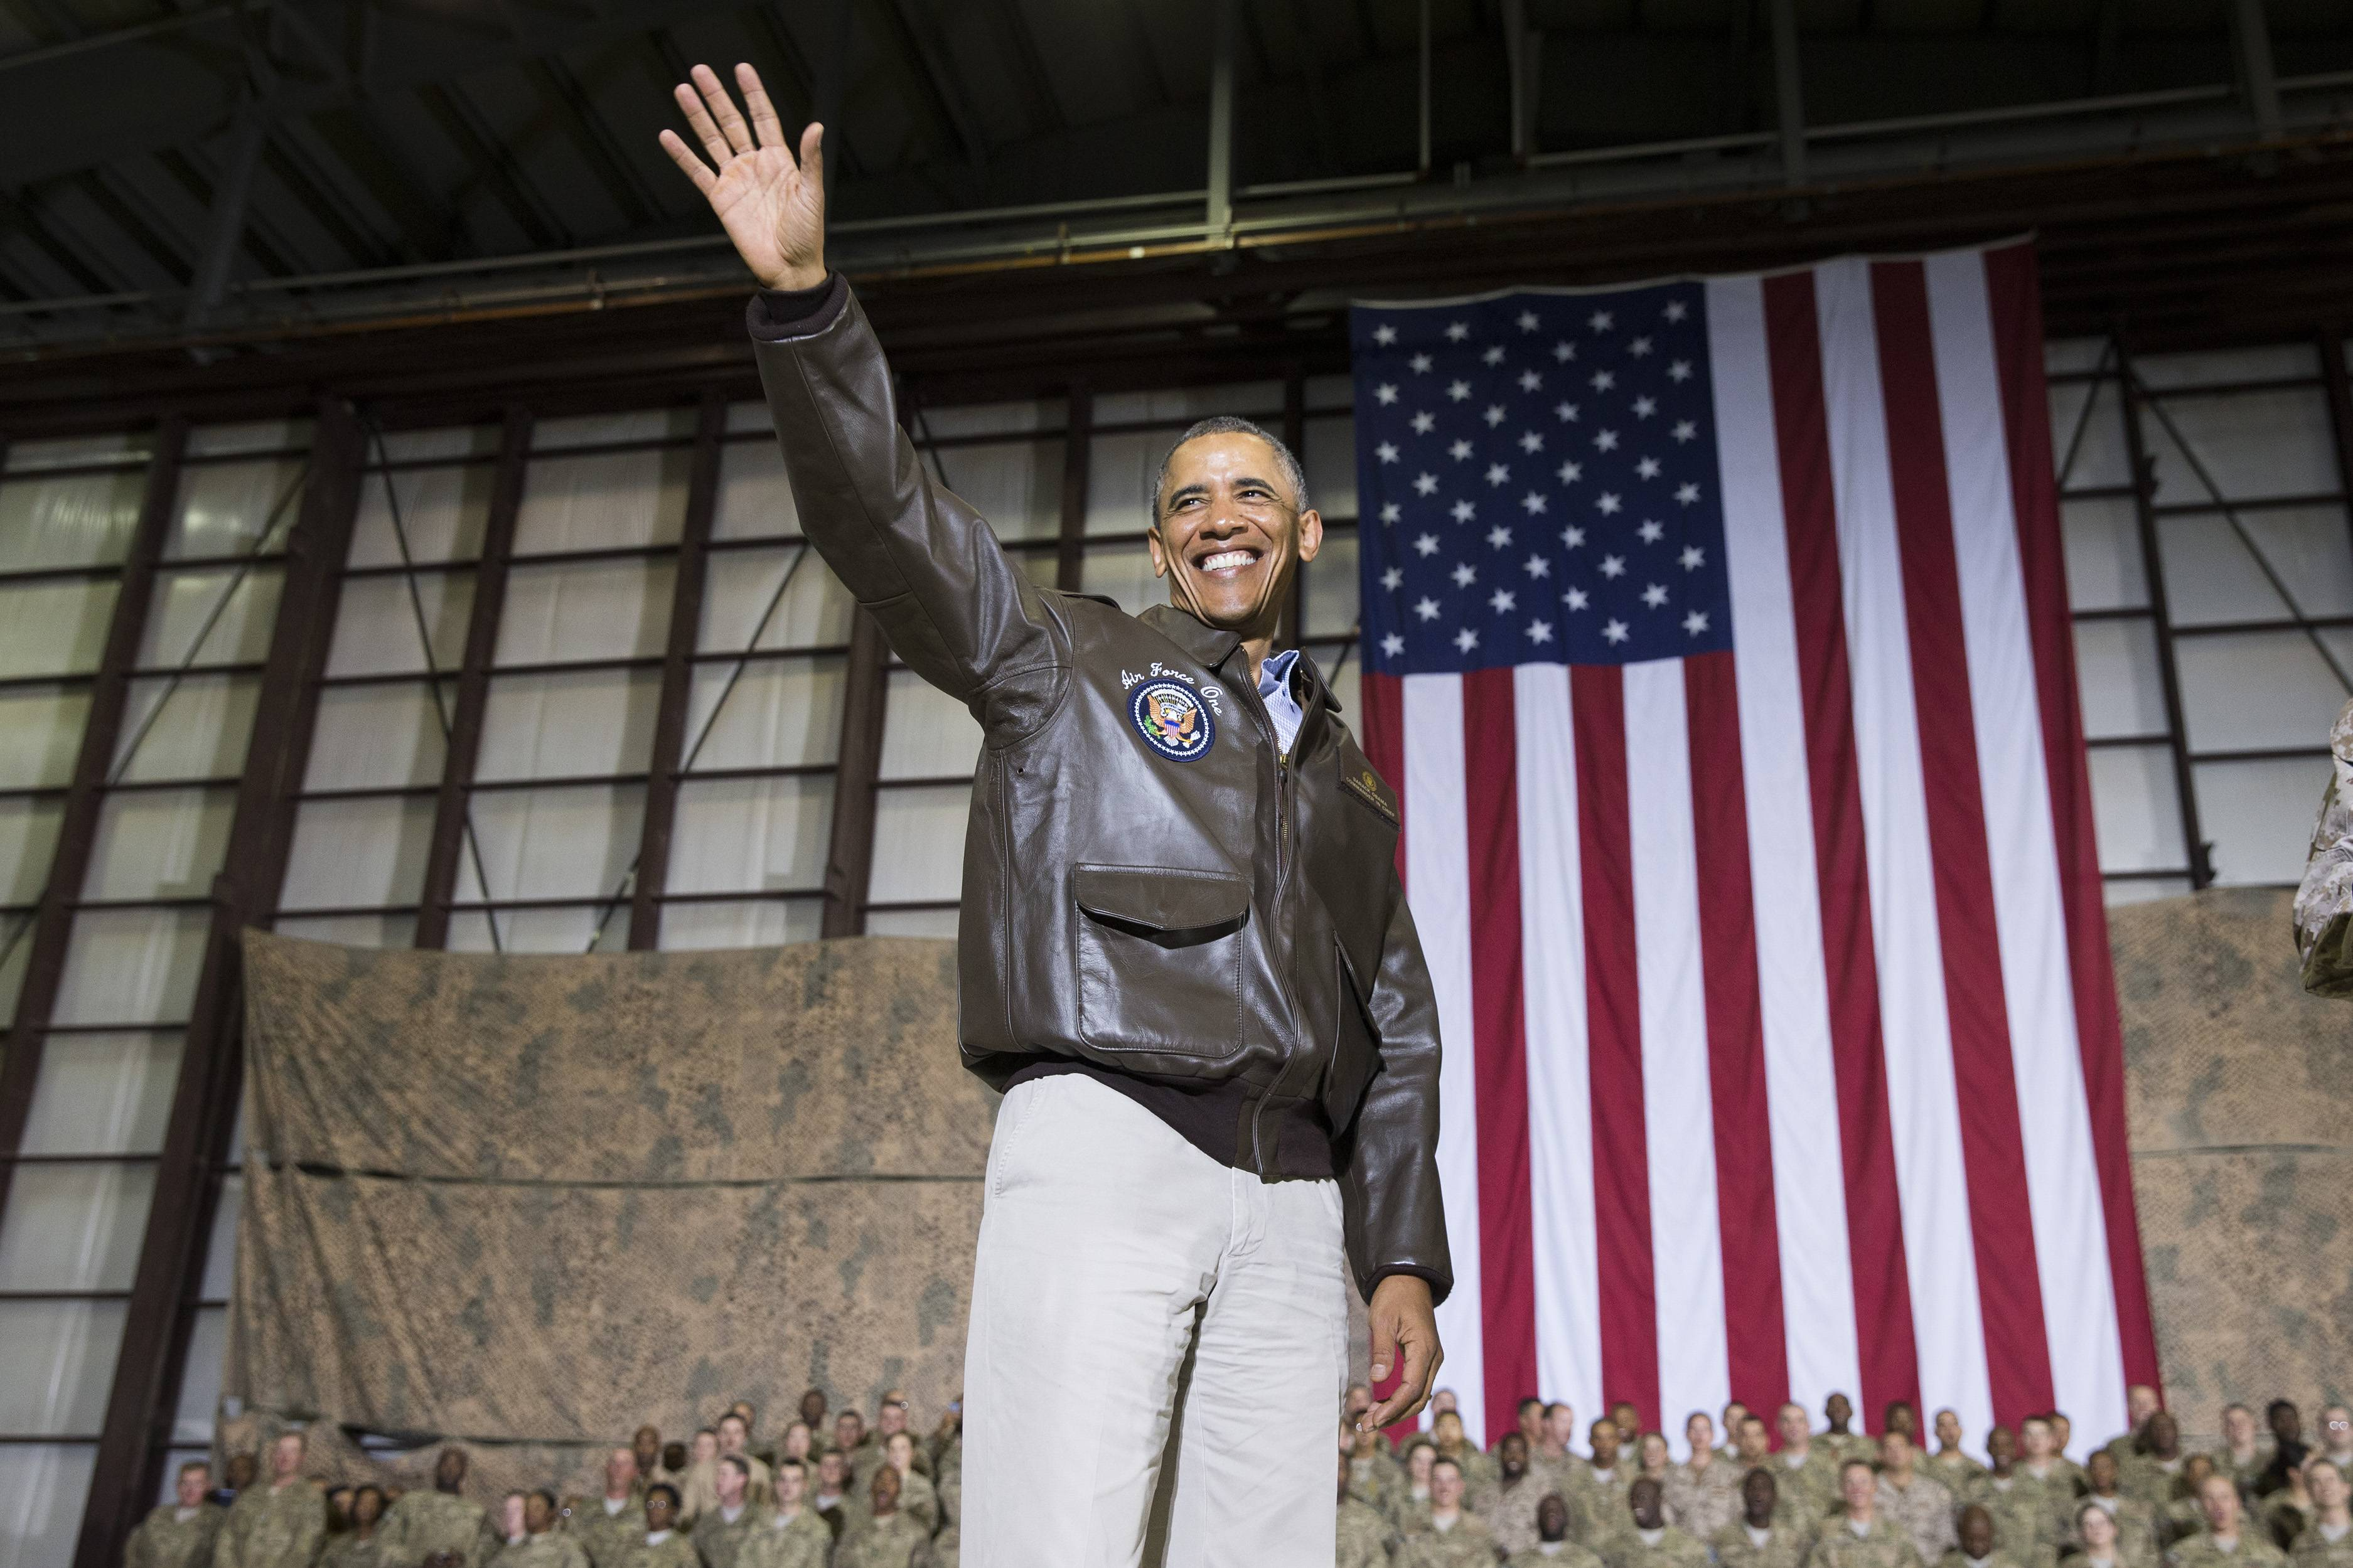 President Barack Obama waves as he arrives for a troop rally after arriving at Bagram Air Field for an unannounced visit.